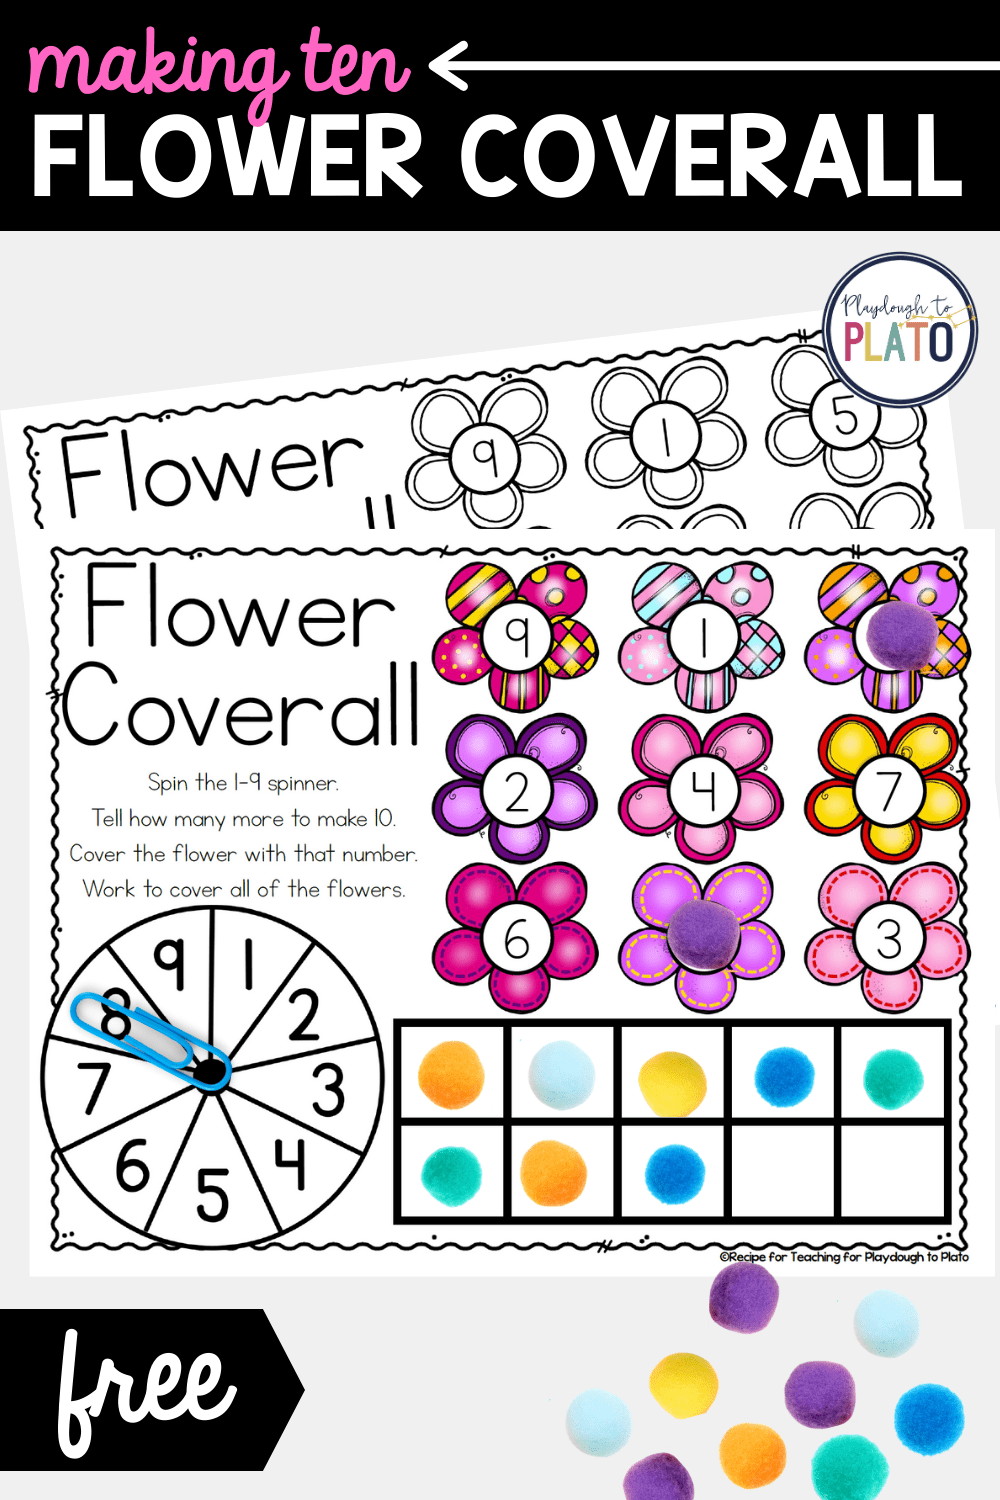 Making Ten Flower Coverall